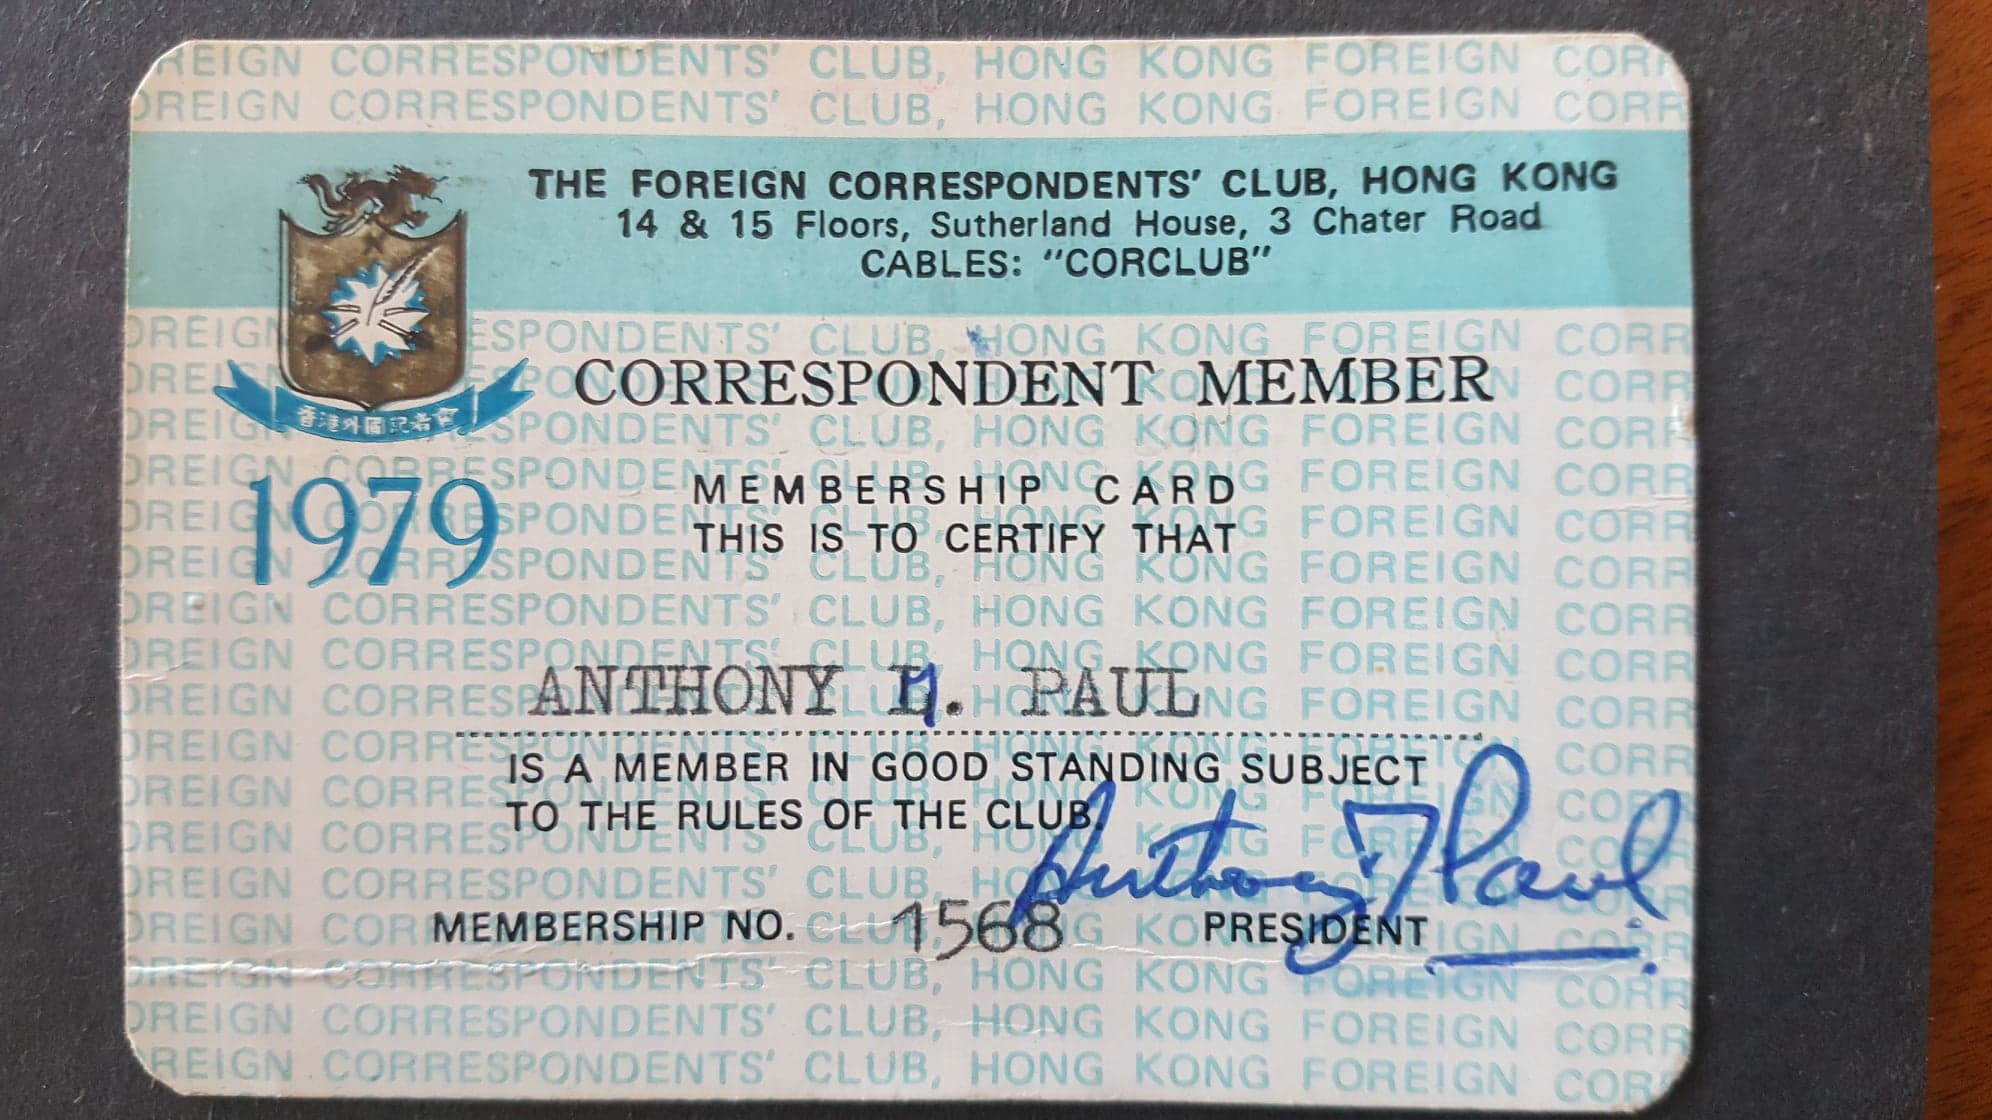 Tony Paul's FCC membership card.